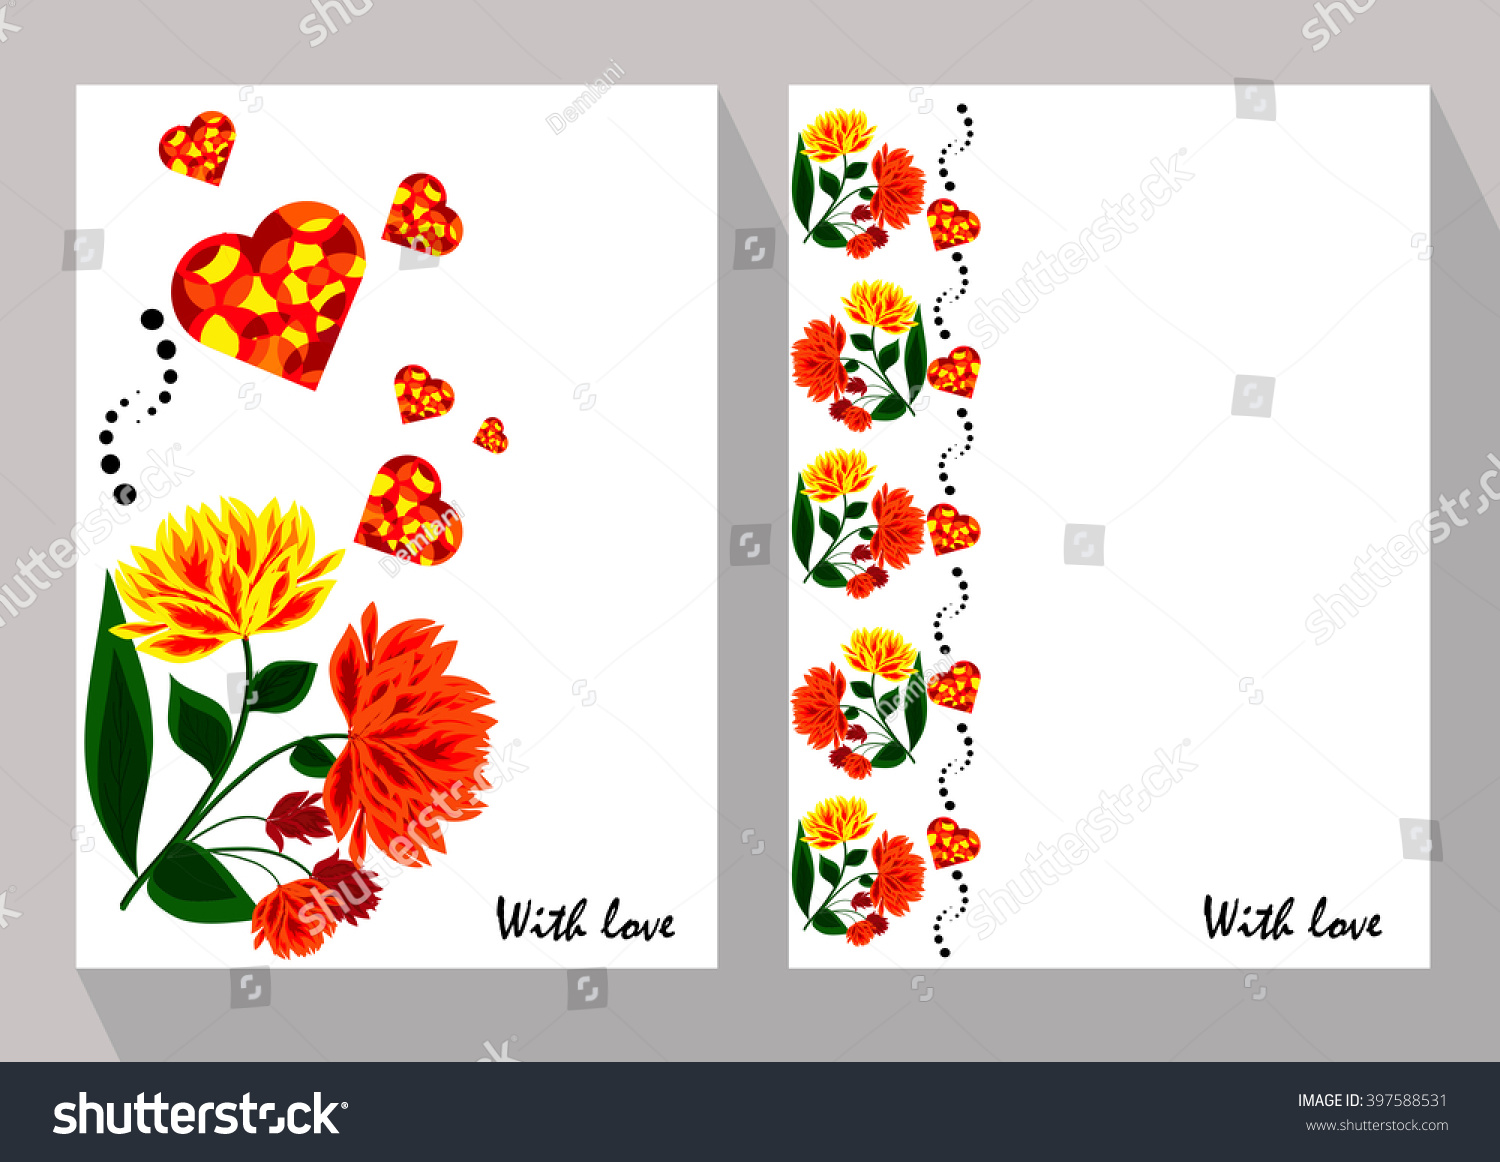 Greeting cards abstract orange flowers ethnic stock vector greeting cards with abstract orange flowers in ethnic style for declarations of love a gift kristyandbryce Image collections